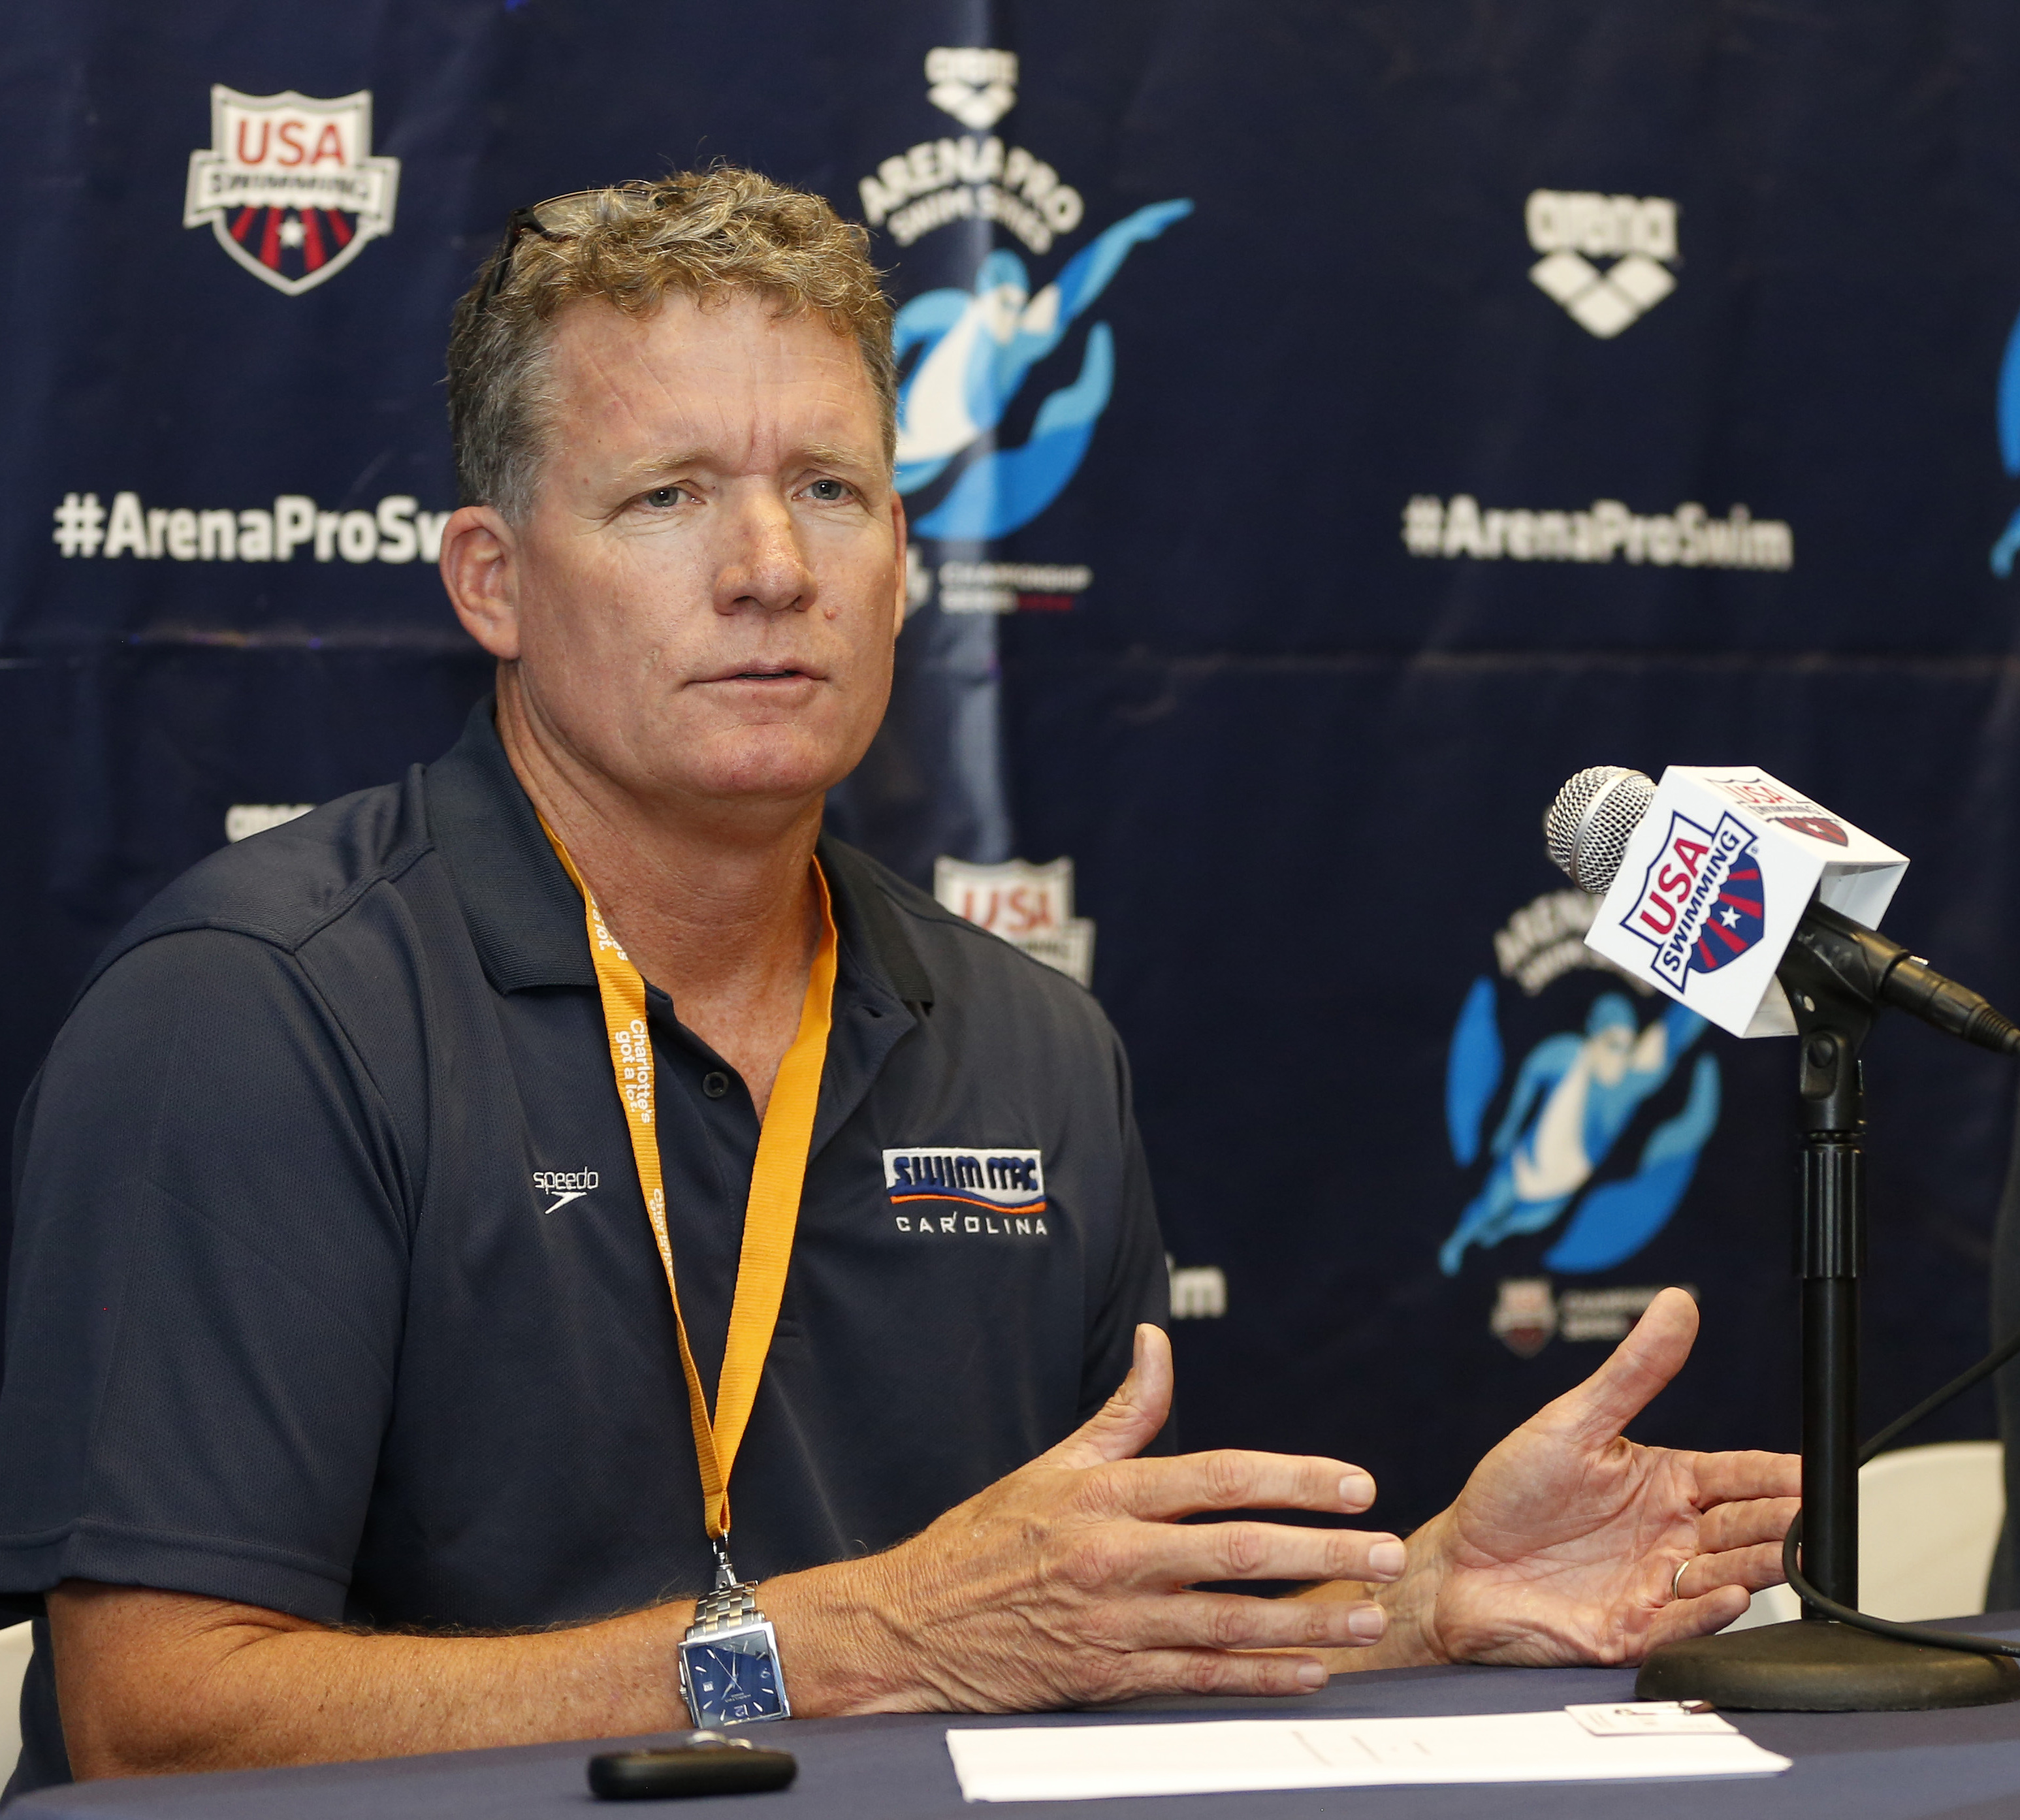 FILE - In this May 14, 2015, file photo, David Marsh answers a question during a press conference at the Arena Pro Swim Series meet in Charlotte, N.C. USA Swimming has picked Bob Bowman and David Marsh as its head coaches for the 2016 Olympics. The organi